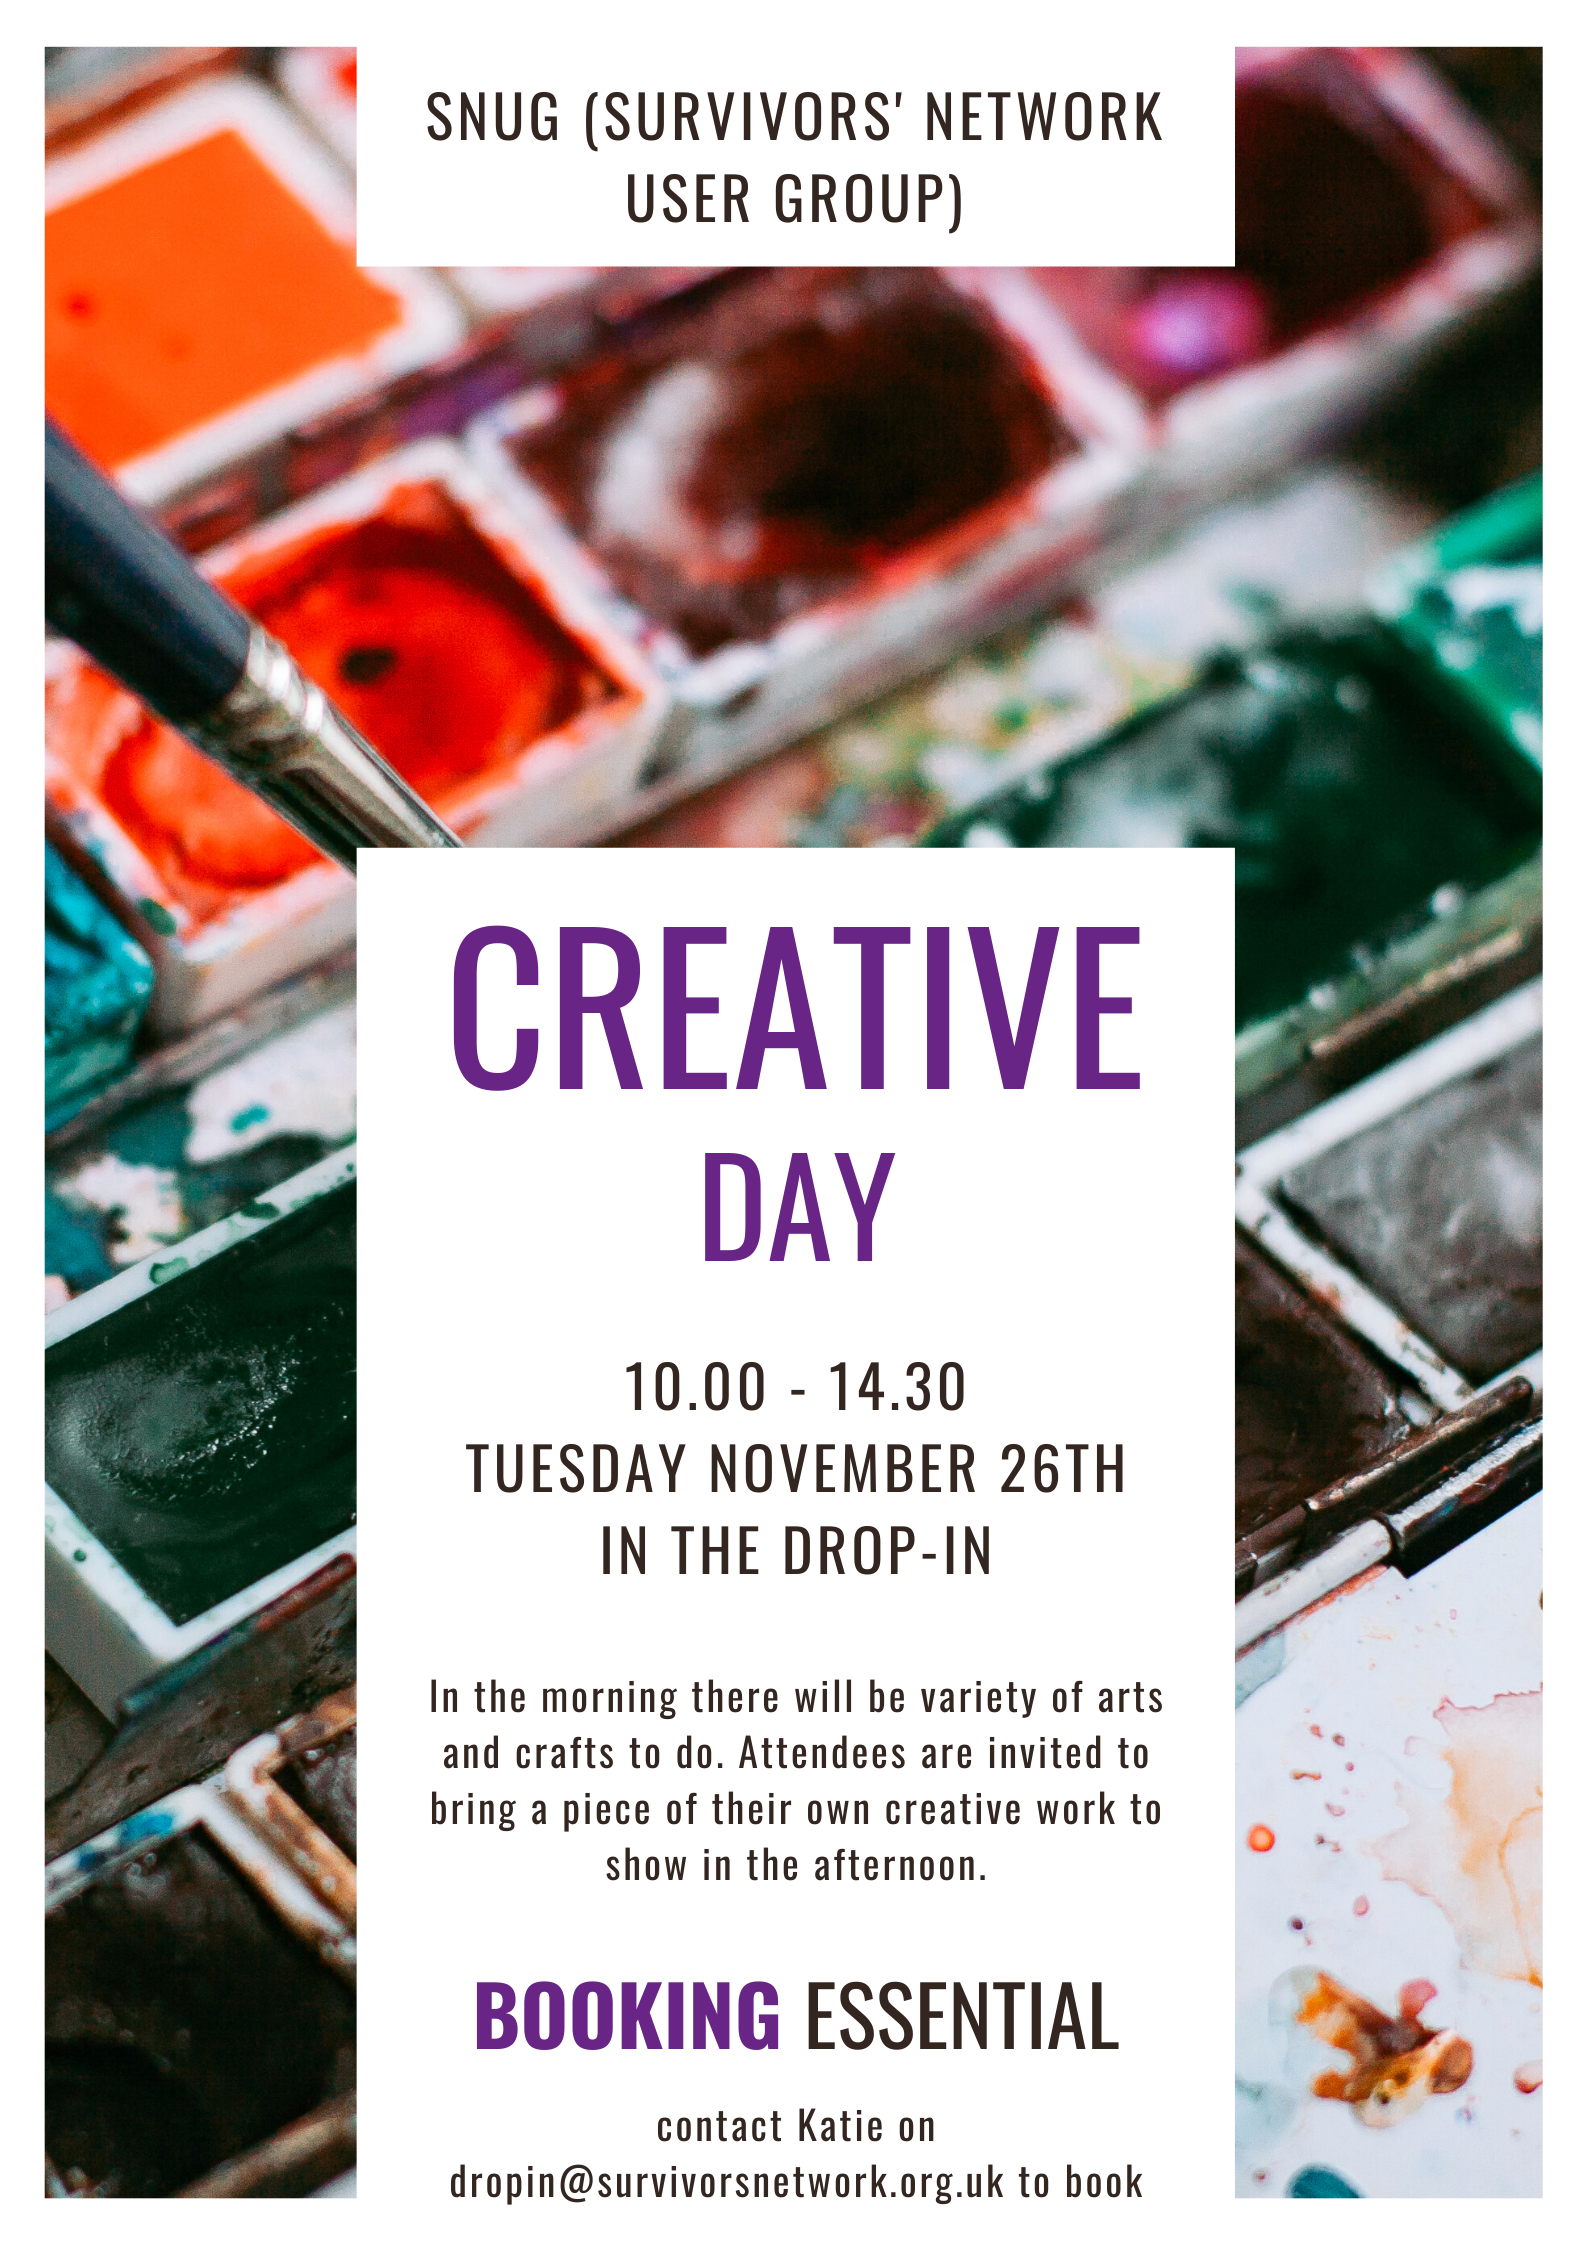 Sample image of the Creative Day poster